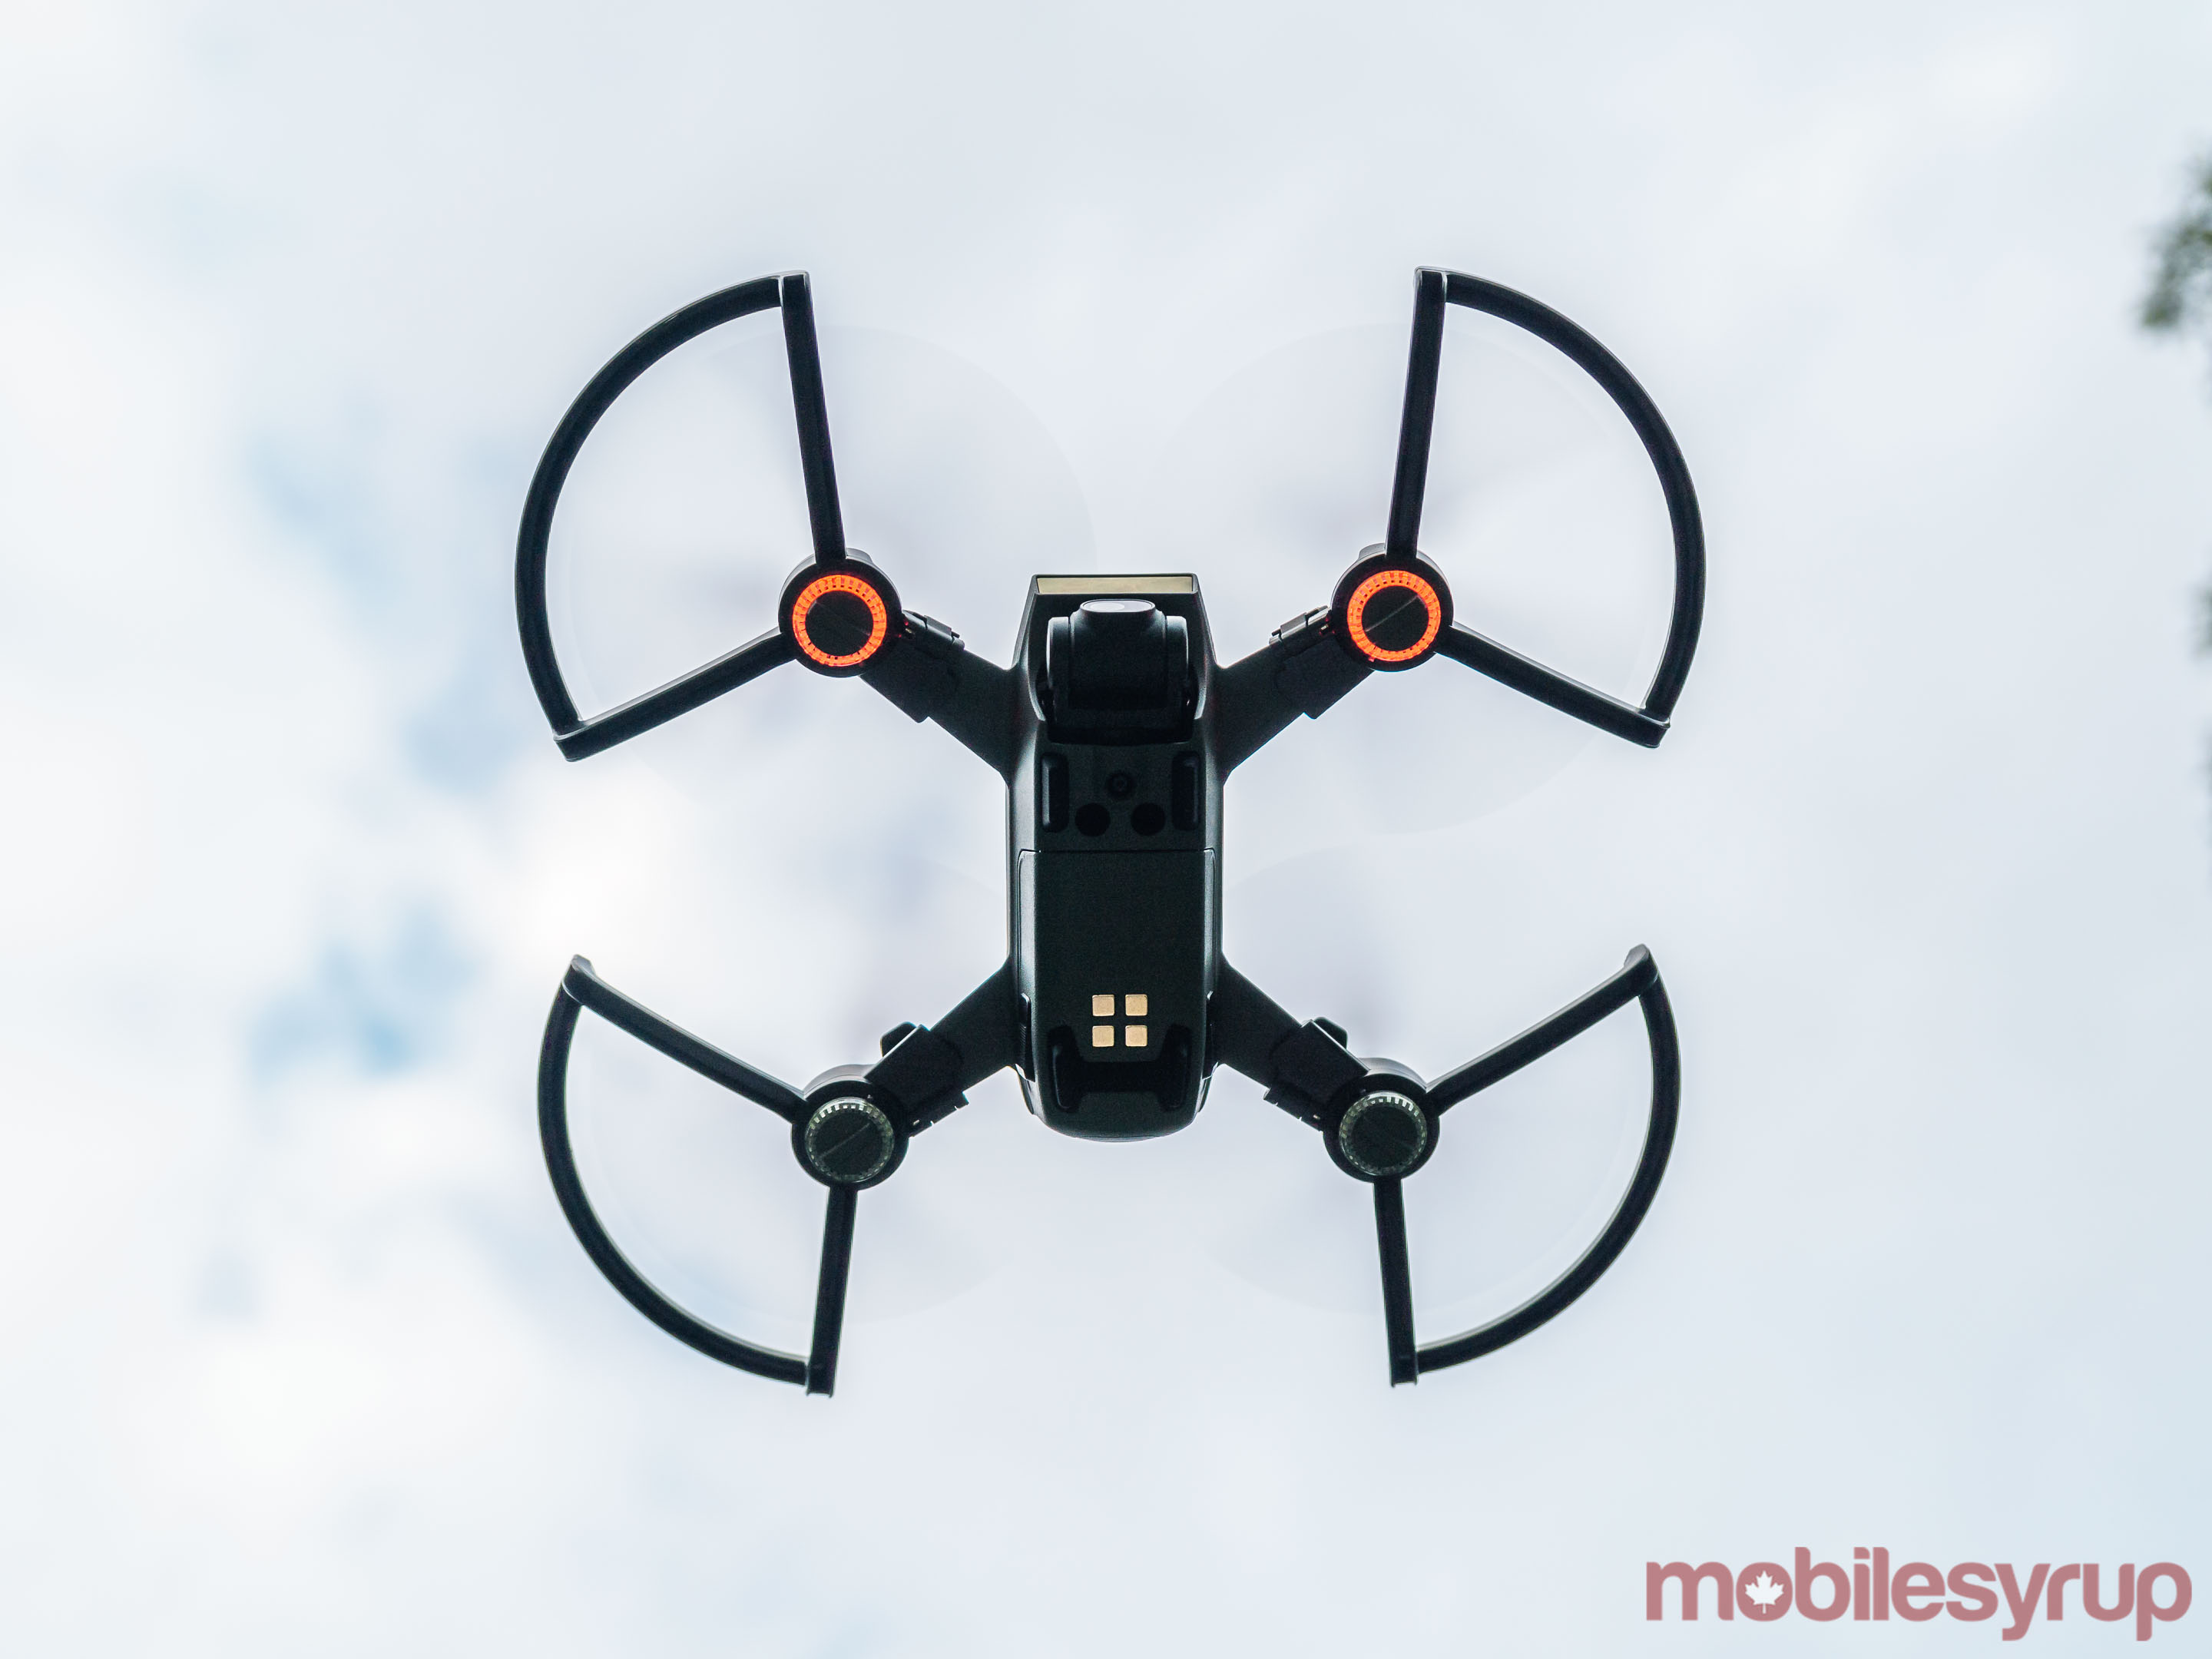 DJI Spark drone seen from below